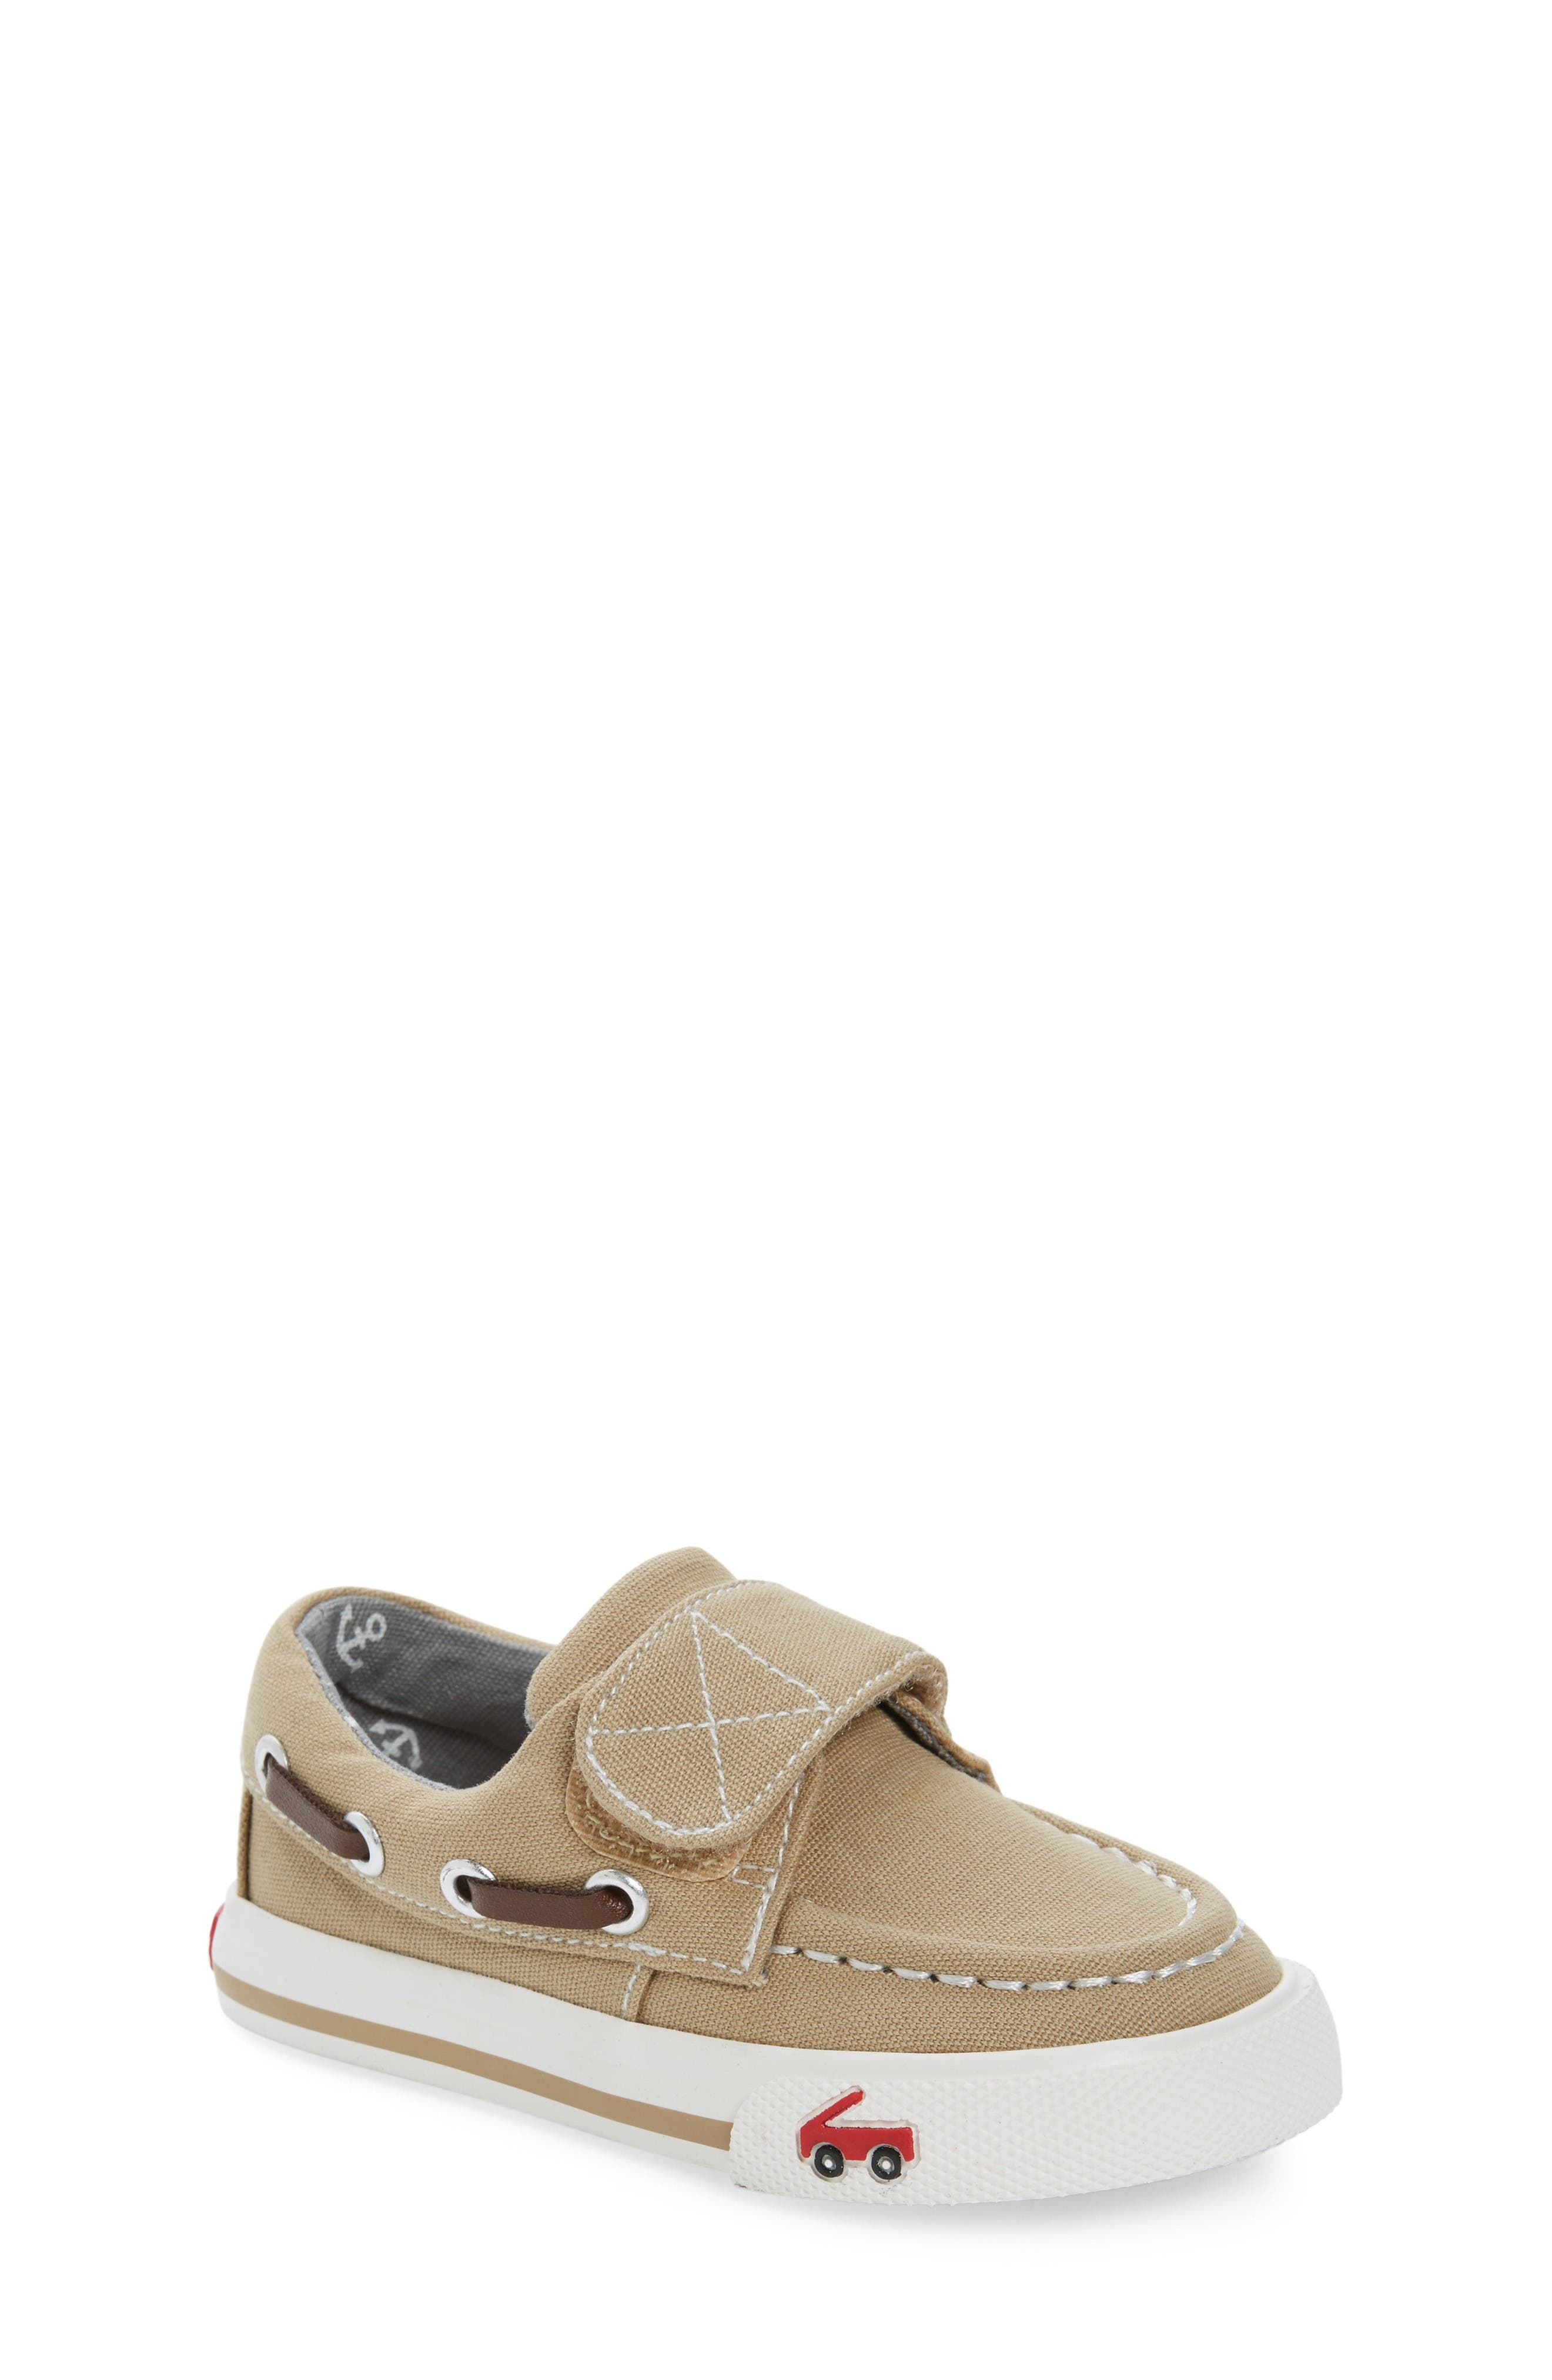 Alternate Image 1 Selected - See Kai Run Elias Sneaker (Baby, Walker & Toddler)